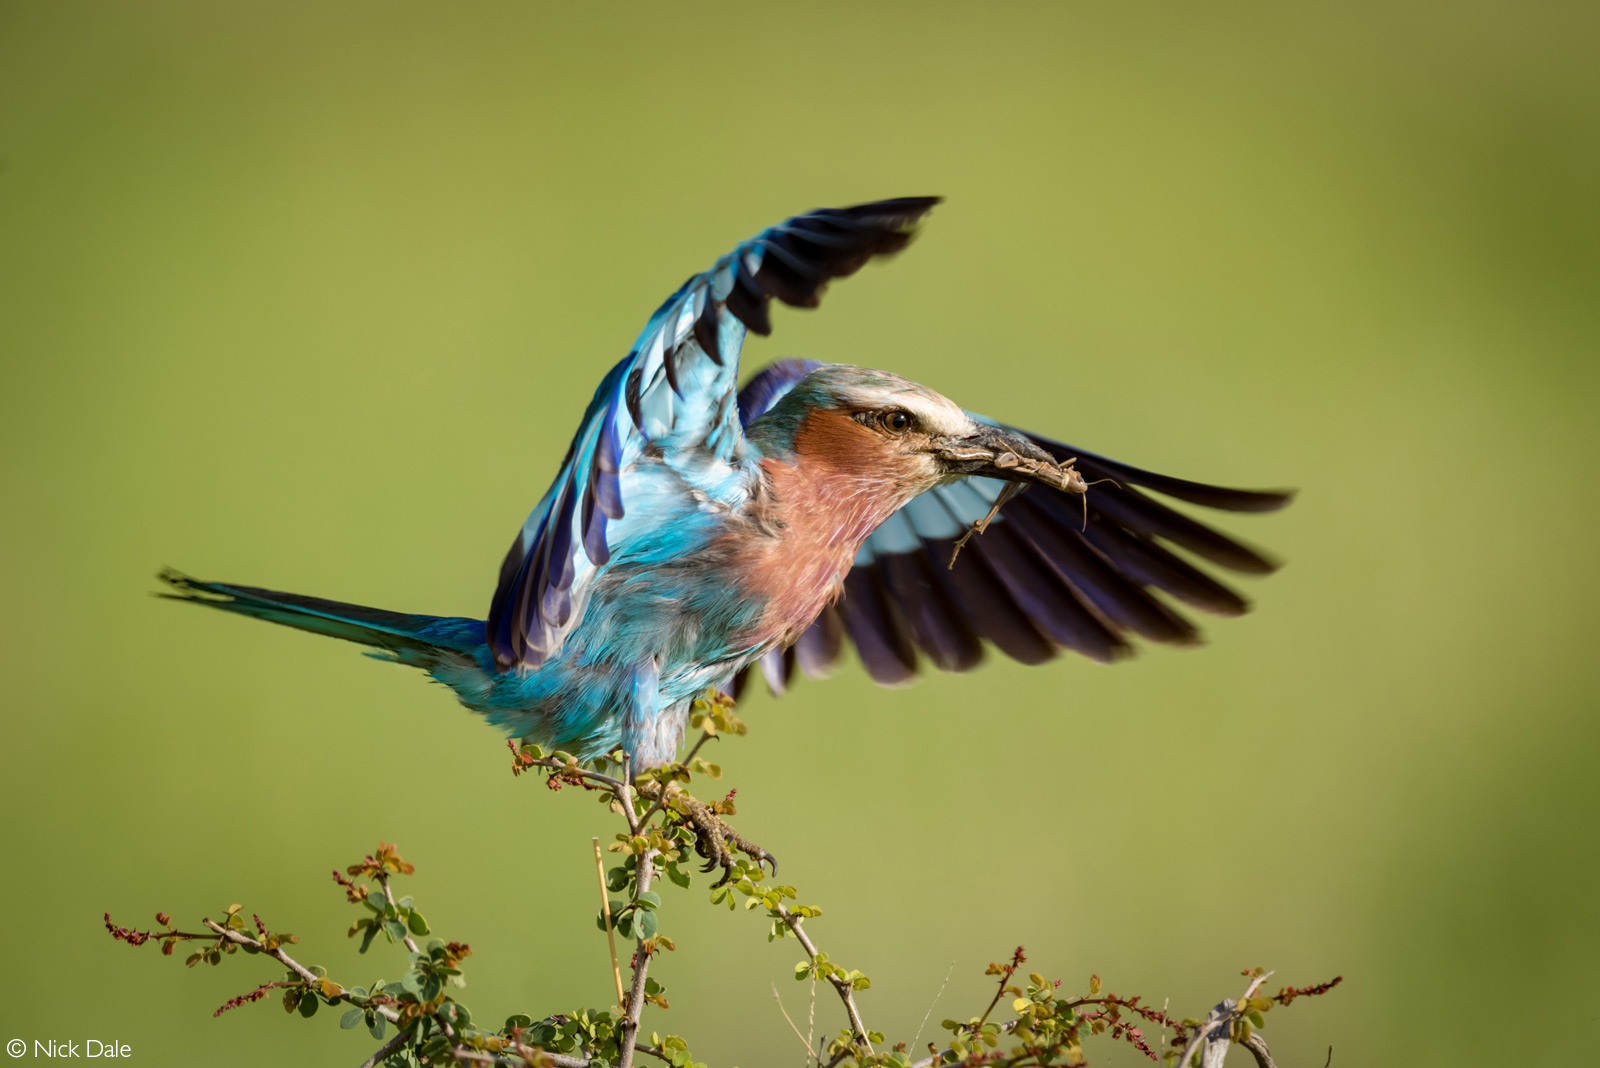 A lilac-breasted roller carrying a dead grasshopper in its beak lifts its wings to take off. Tarangire National Park, Tanzania © Nick Dale